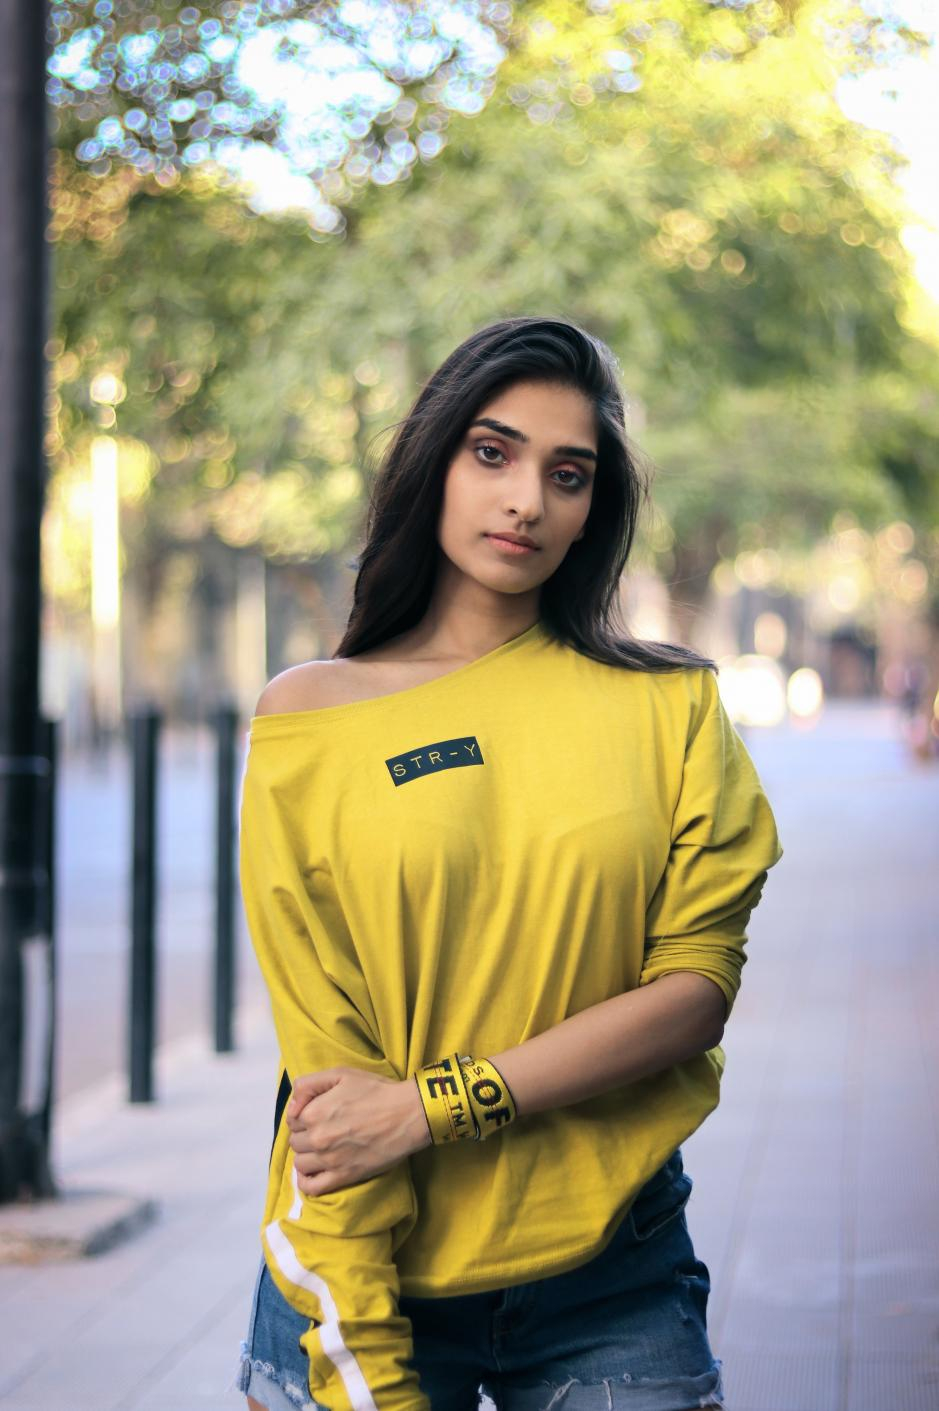 A girl wearing yellow round neck full sleeves T-shirt with white strips on the sleeves and str-y written on it is standing on a footpath